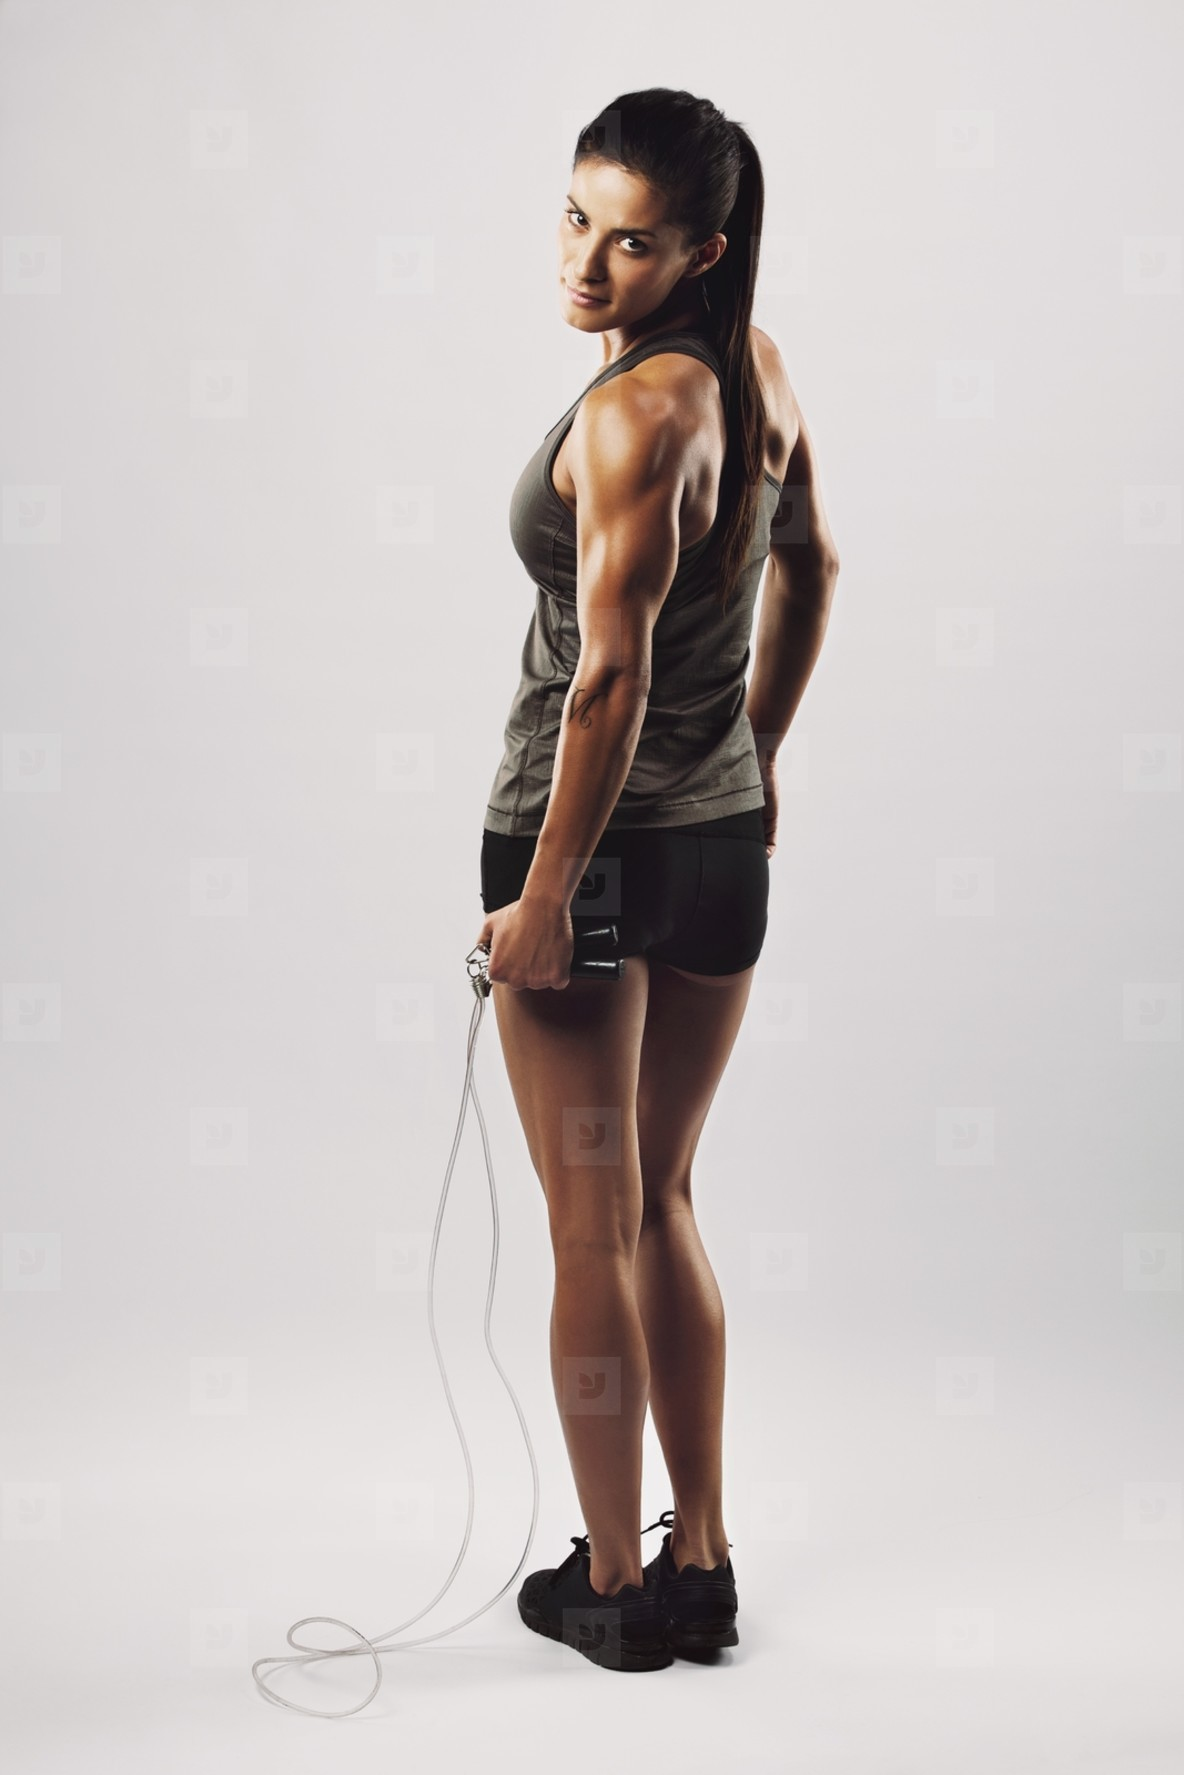 Fitness woman posing with skipping rope